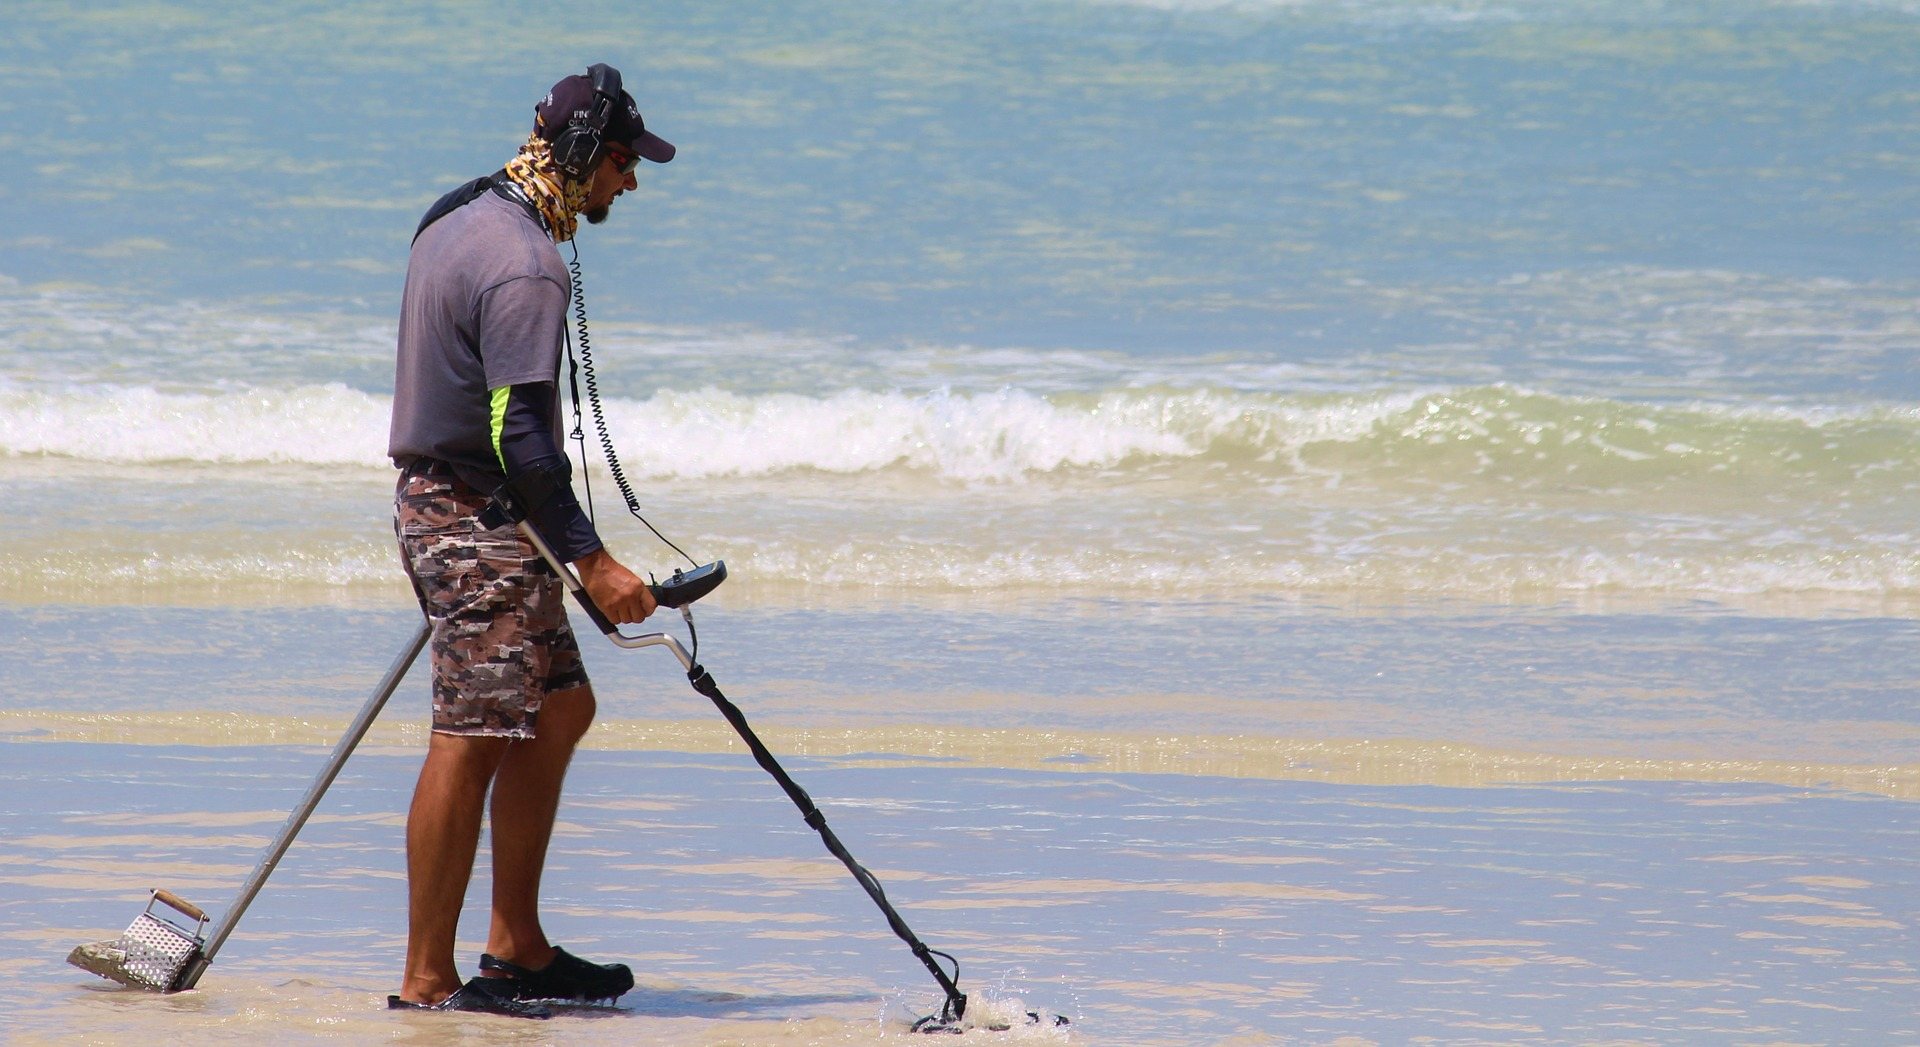 The Atheist and His Metal Detector